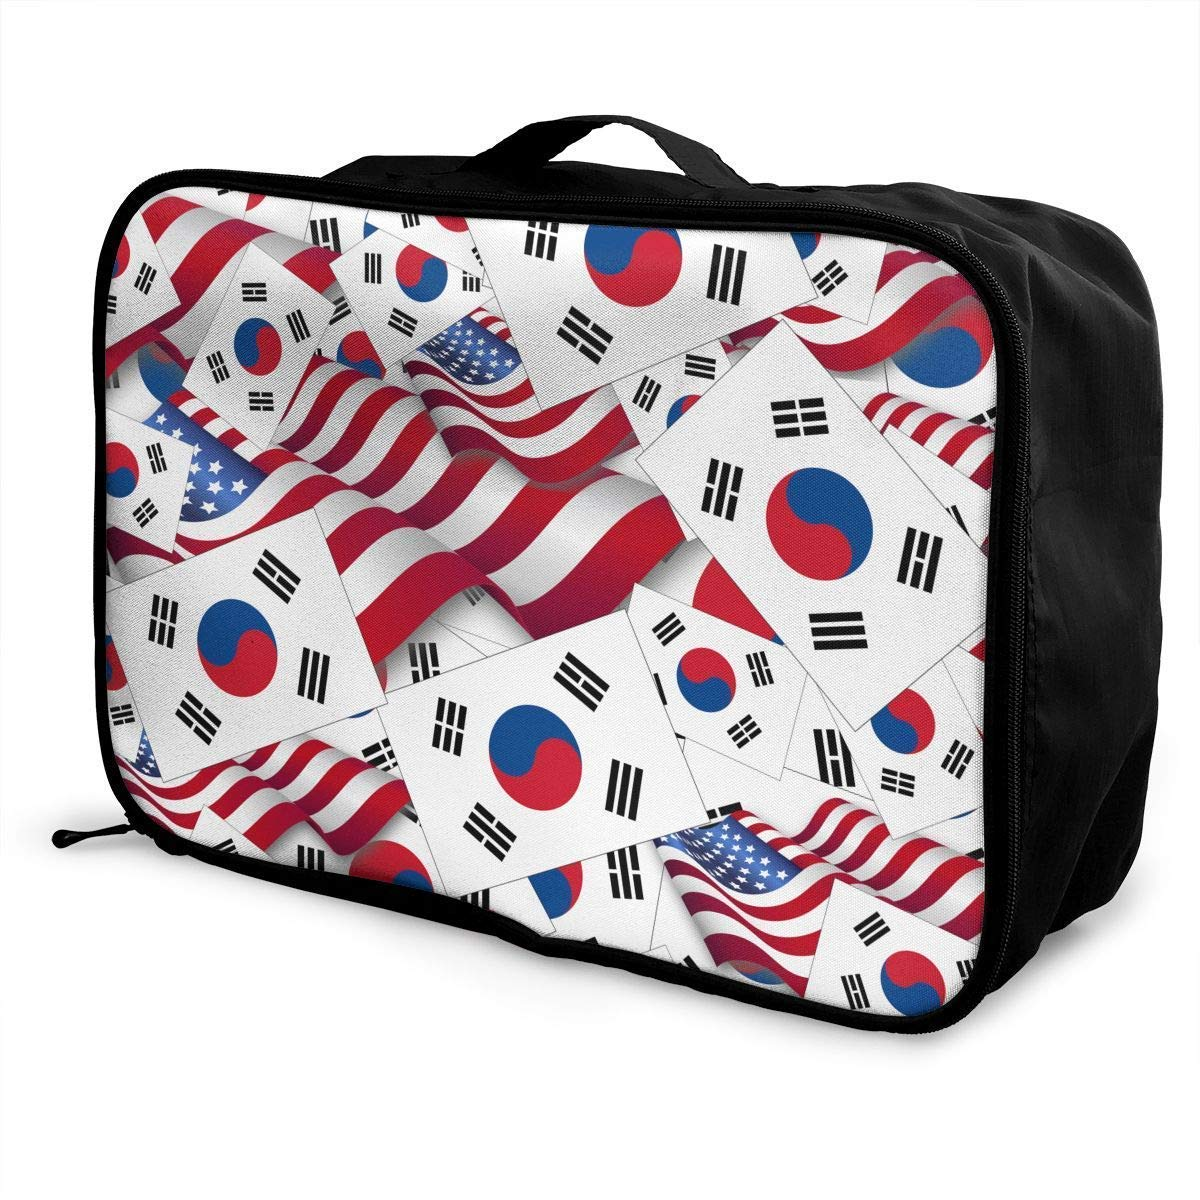 JTRVW Luggage Bags for Travel Portable Luggage Duffel Bag South Korea Flag with America Flag Travel Bags Carry-on in Trolley Handle